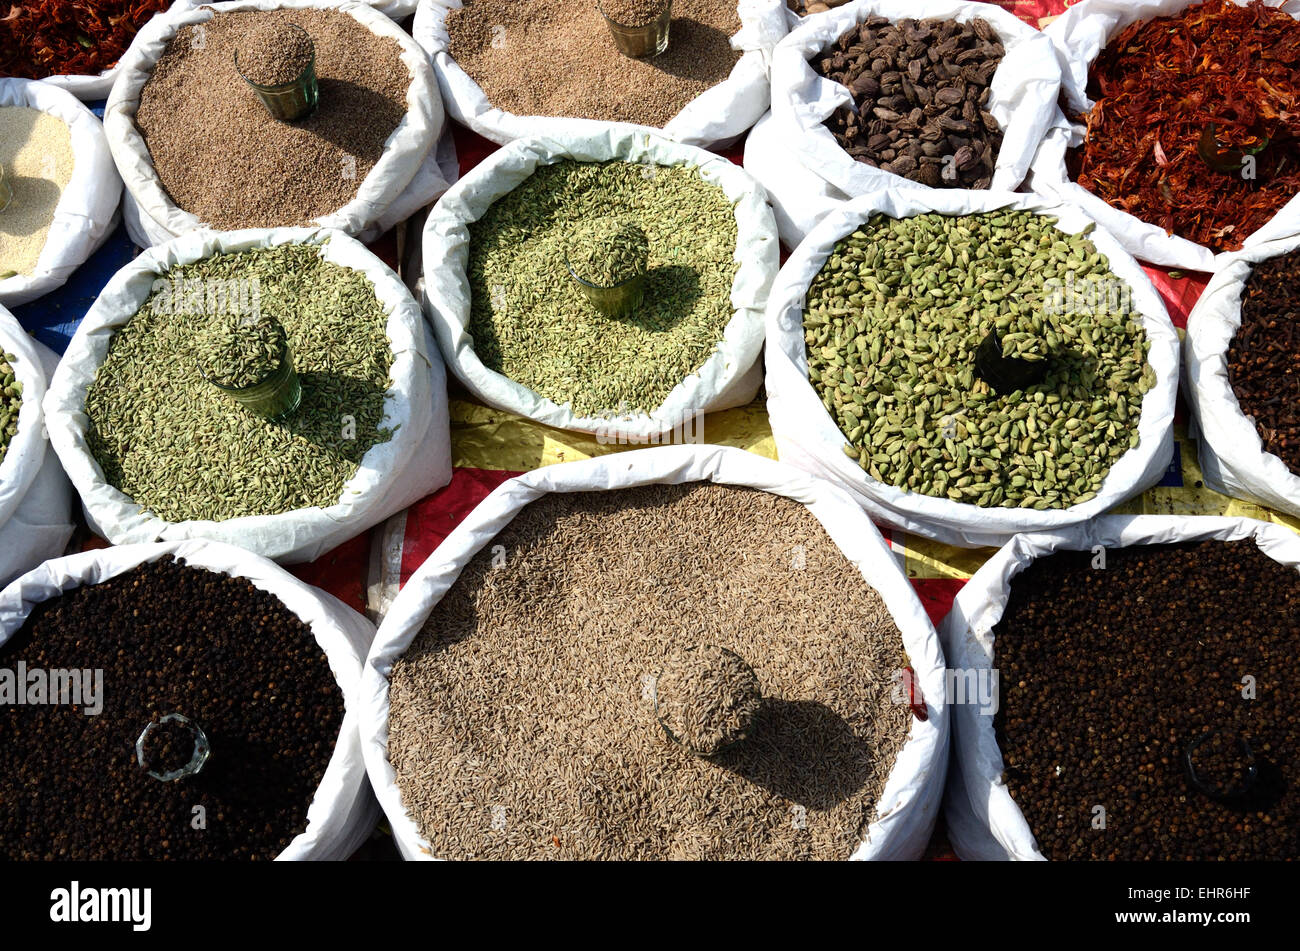 Spices for sale at an Indian market Madhya Pradesh India - Stock Image